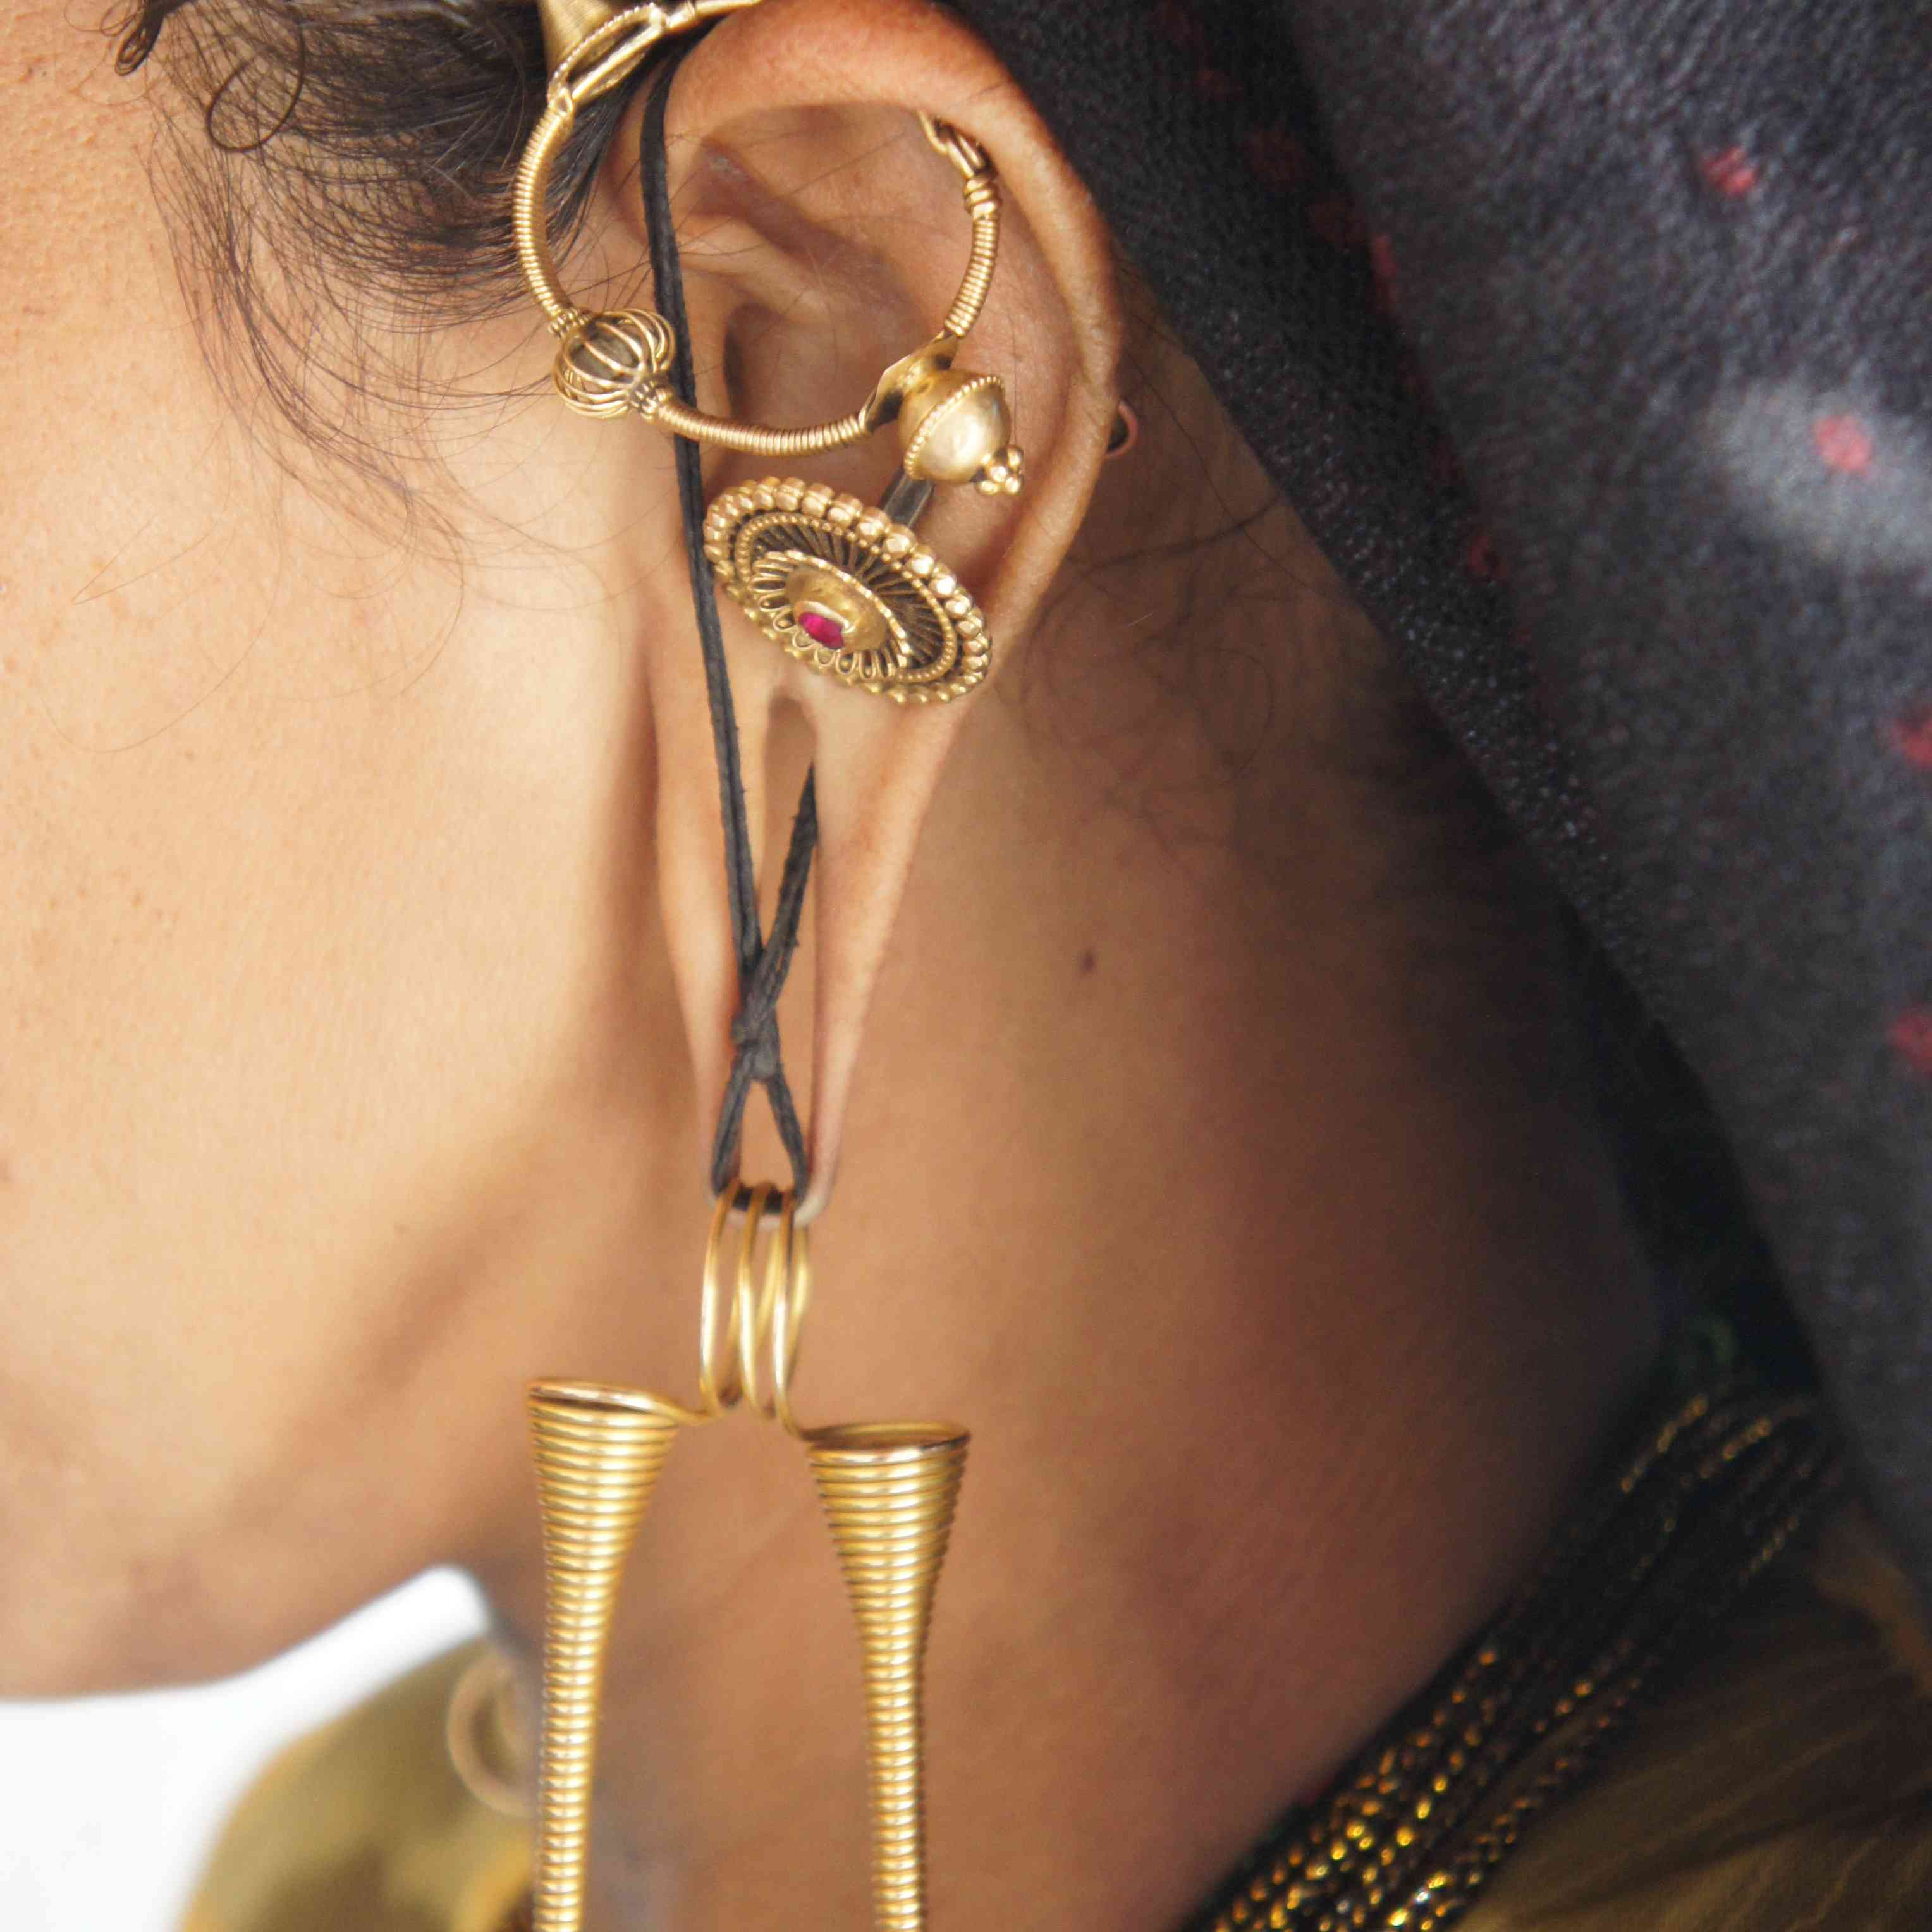 elaborate gold earrings on an Indian woman with stretched earlobes